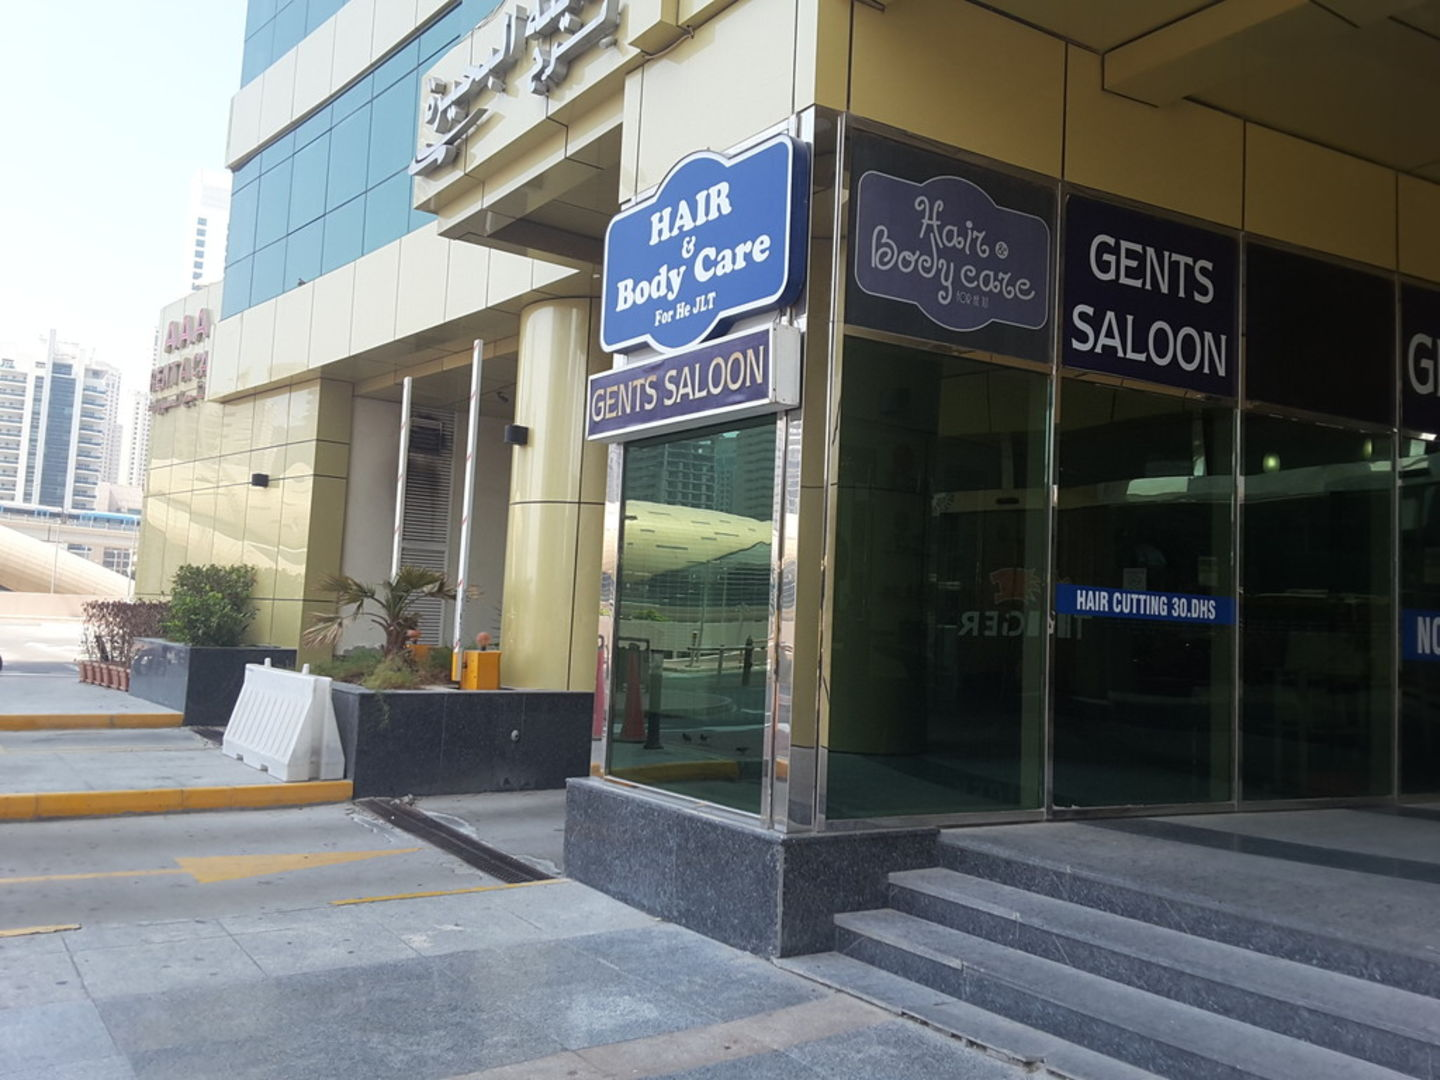 HiDubai-business-hair-body-care-for-he-jlt-gents-saloon-beauty-wellness-health-beauty-salons-jumeirah-lake-towers-al-thanyah-5-dubai-2